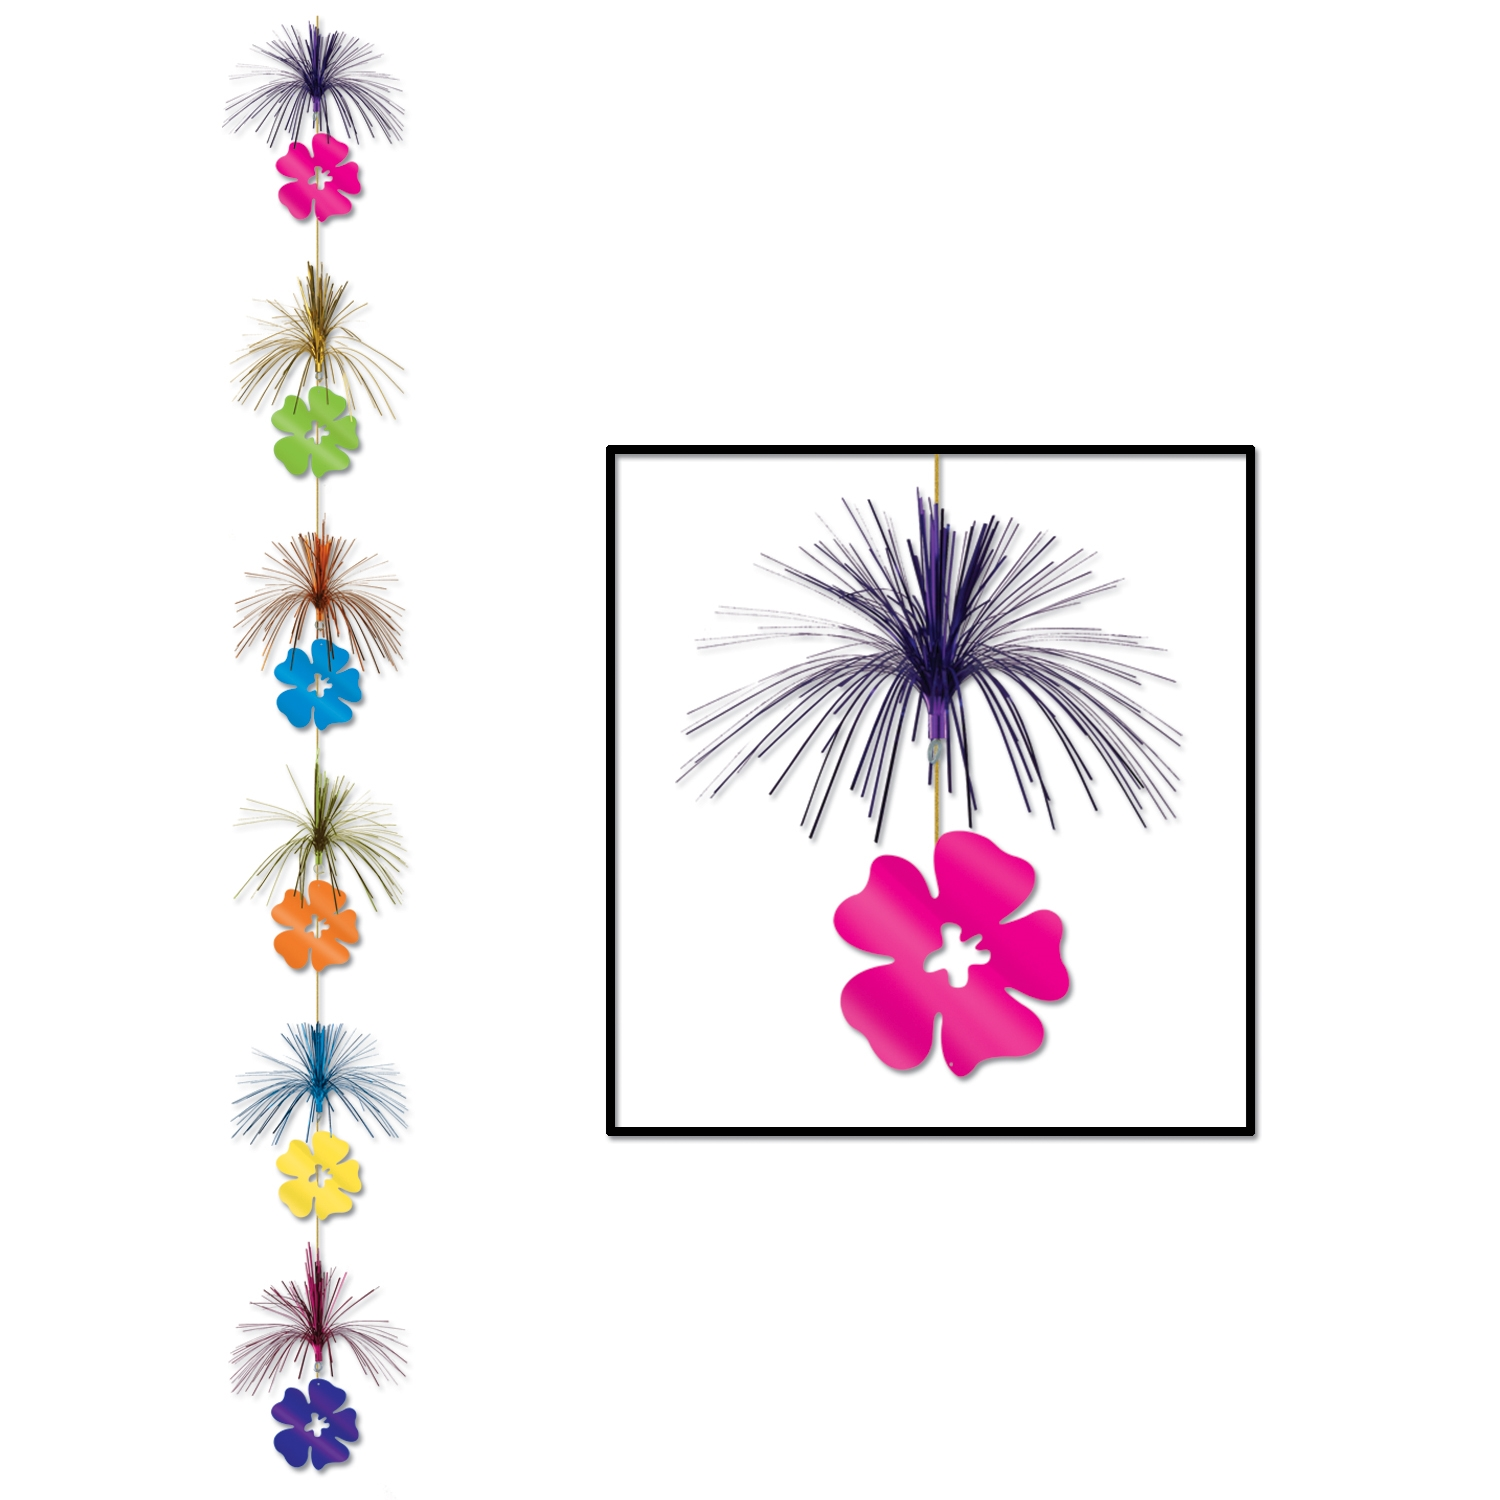 Hibiscus Firework Stringer (Pack of 12) Hibiscus Firework Stringer, decoration, luau, new years eve, wholesale, inexpensive, bulk